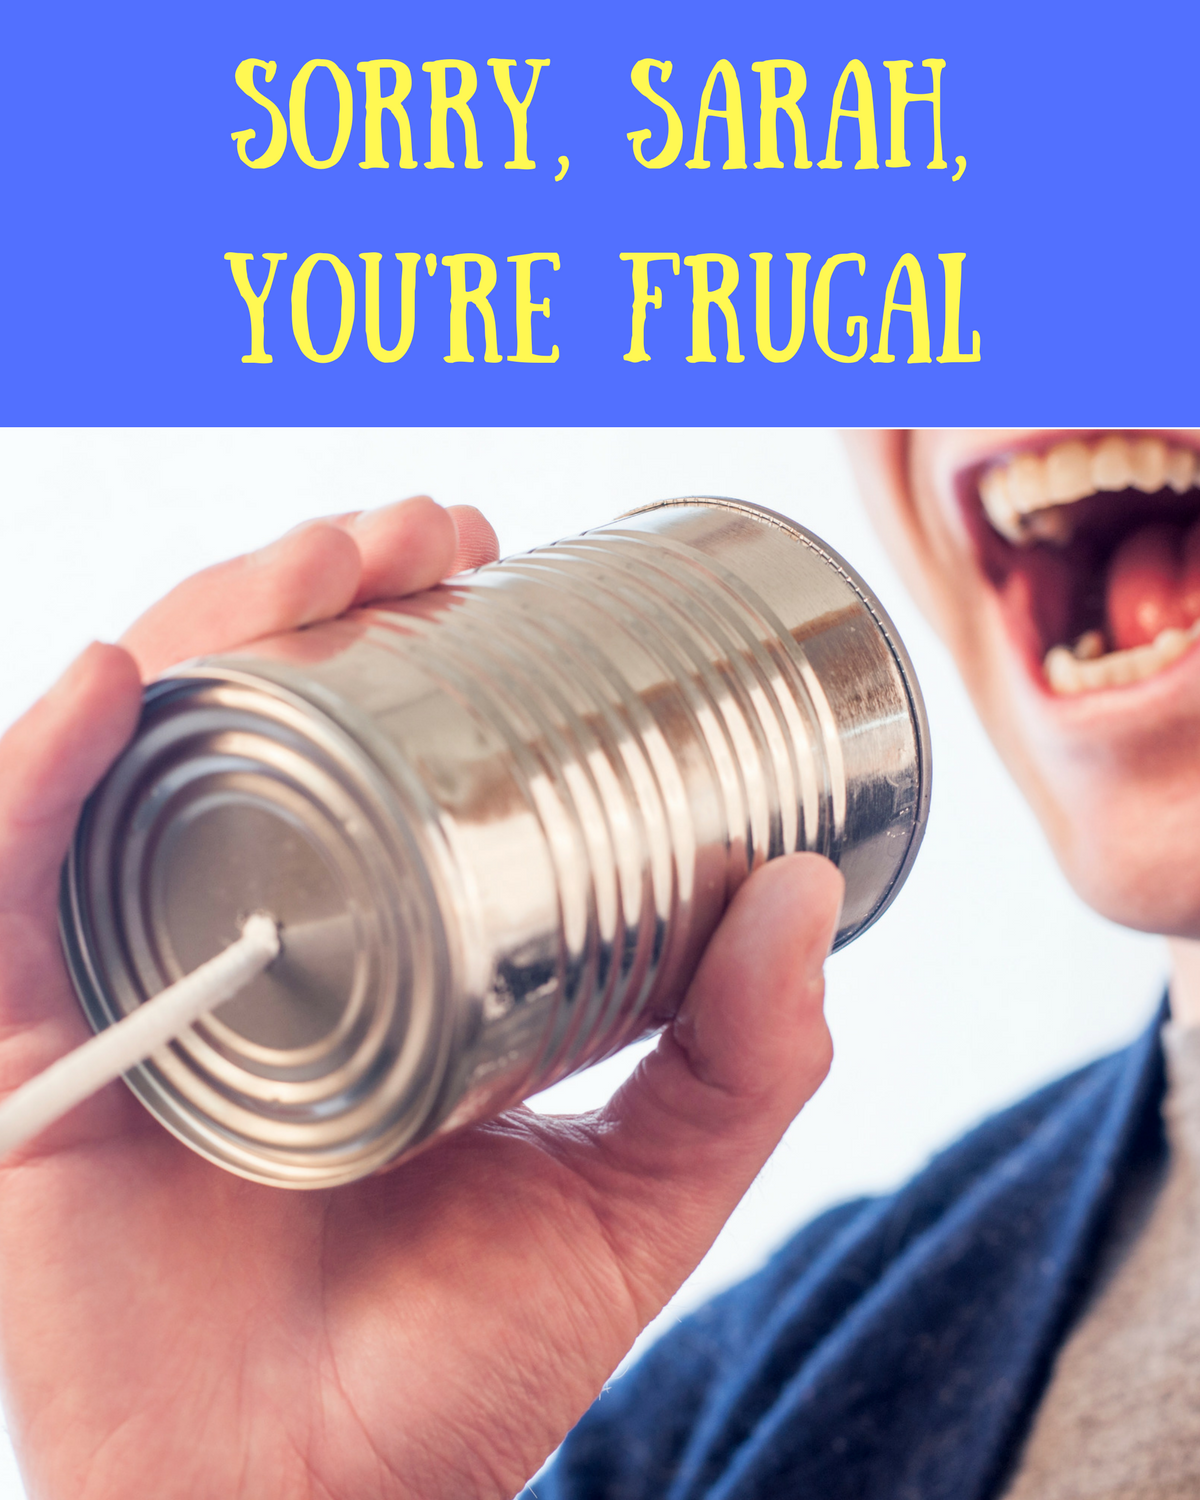 Frugality is about more than you might think!